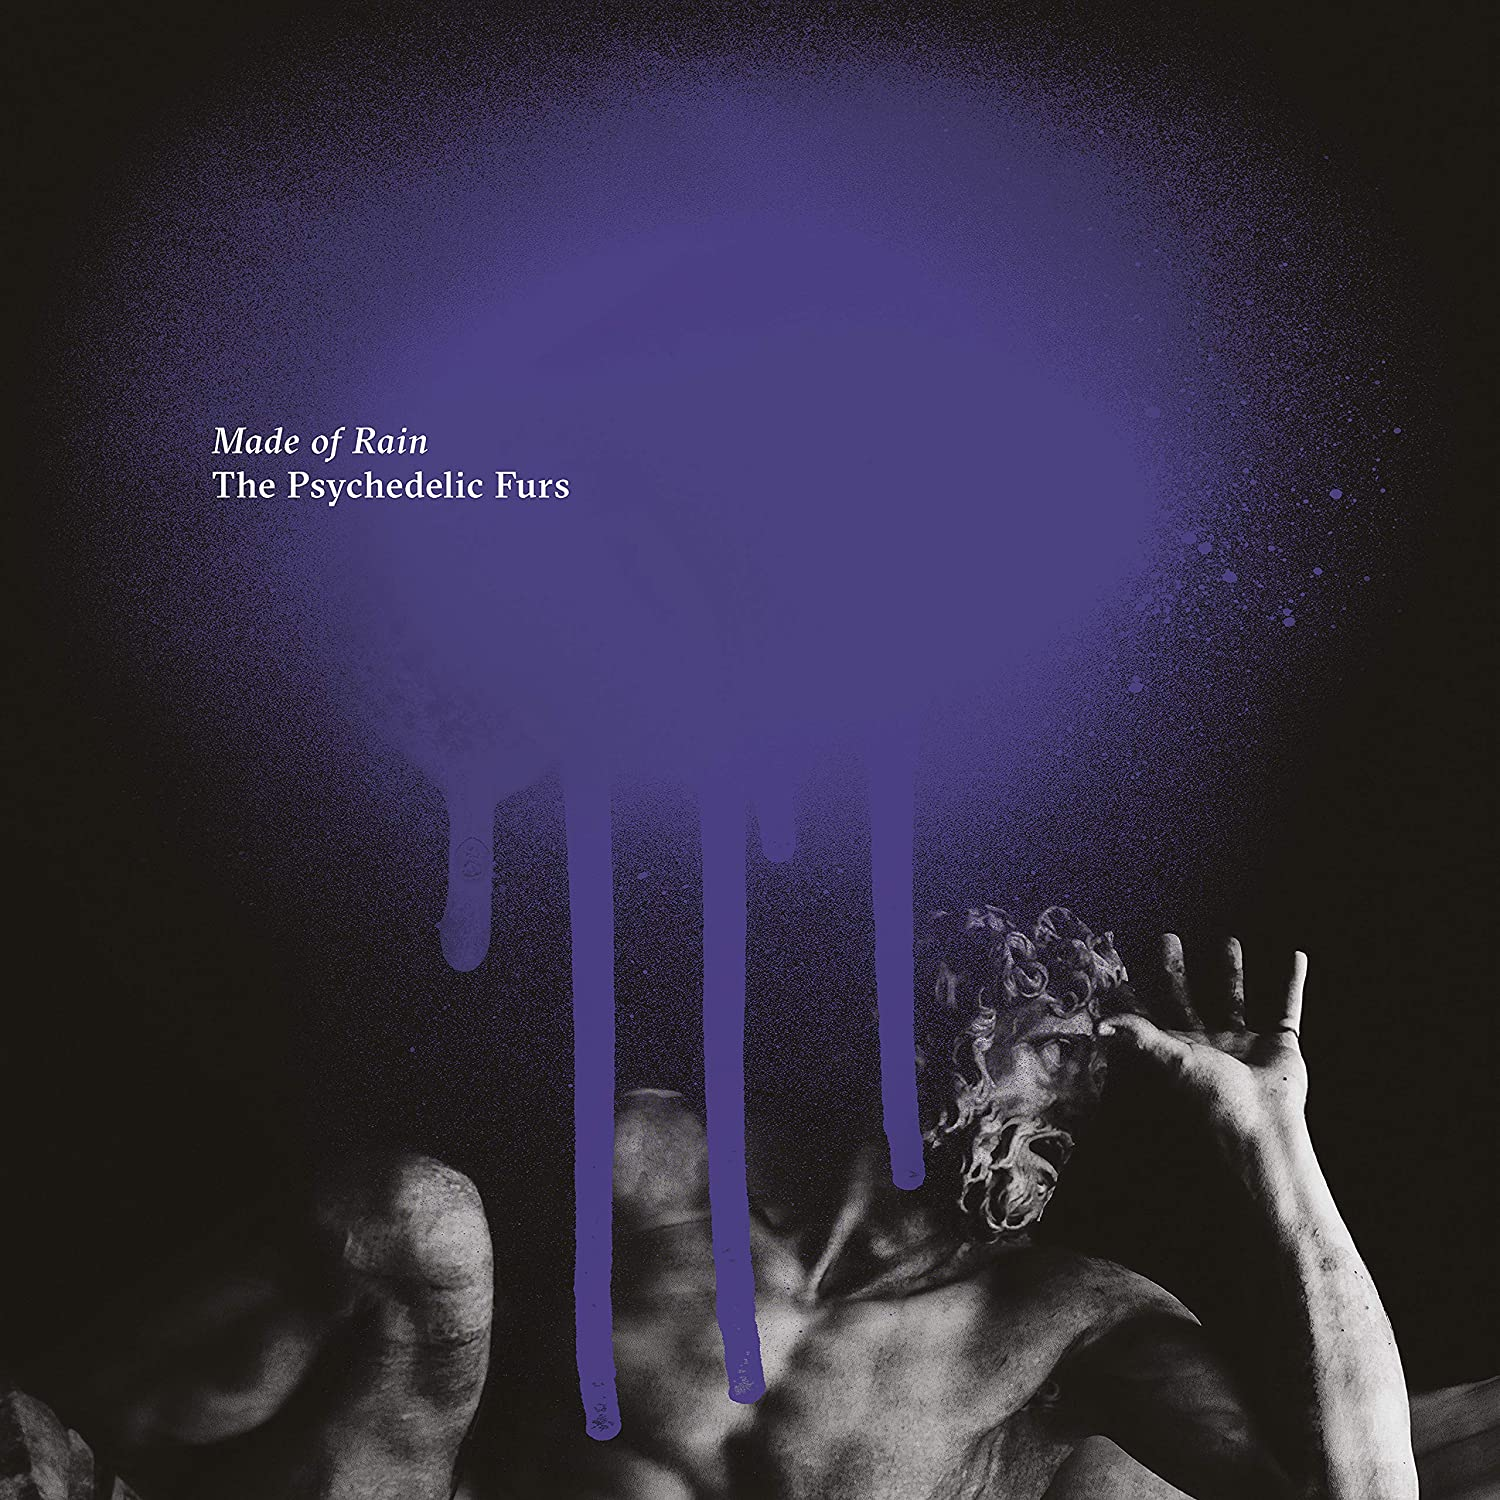 The Psychedelic Furs: Made Of Rain [Album Review]